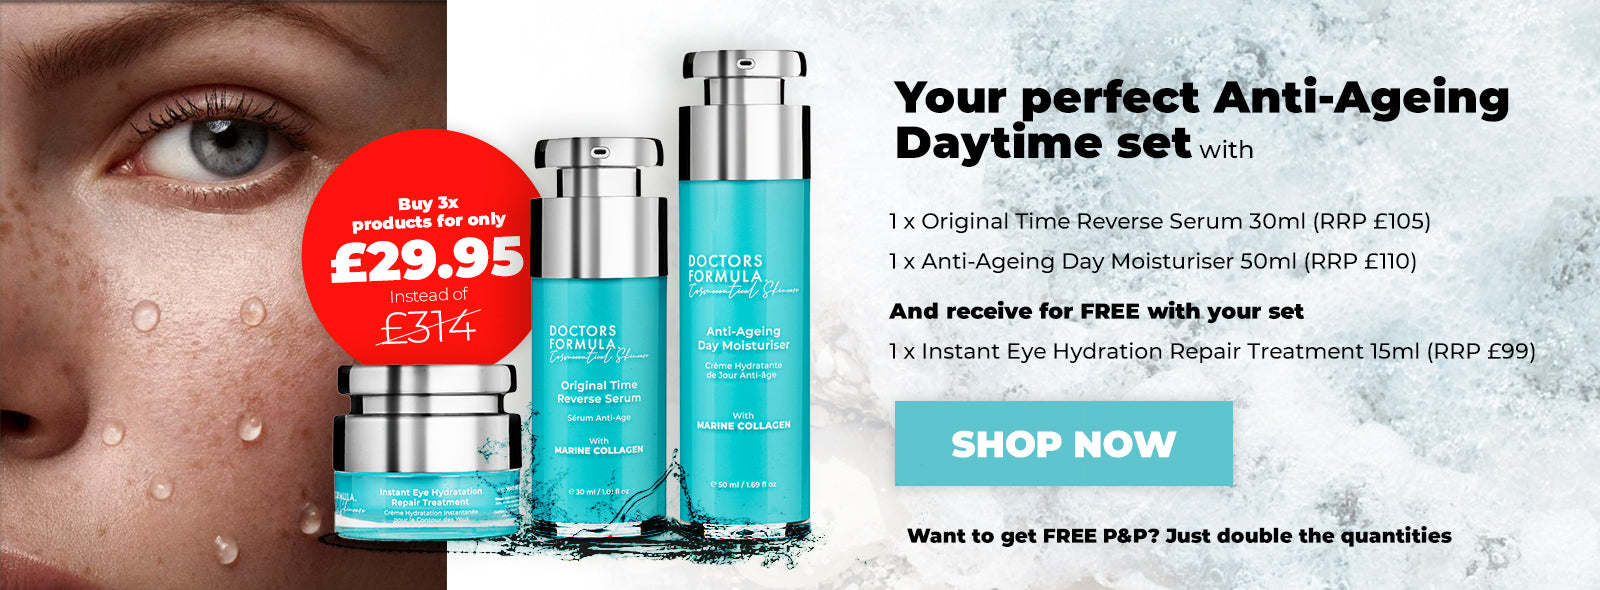 OFFER! PERFECT ANTI-AGEING DAY TIME SET WITH A FREE INSTANT EYE HYDRATION REPAIR TREATMENT 15ML